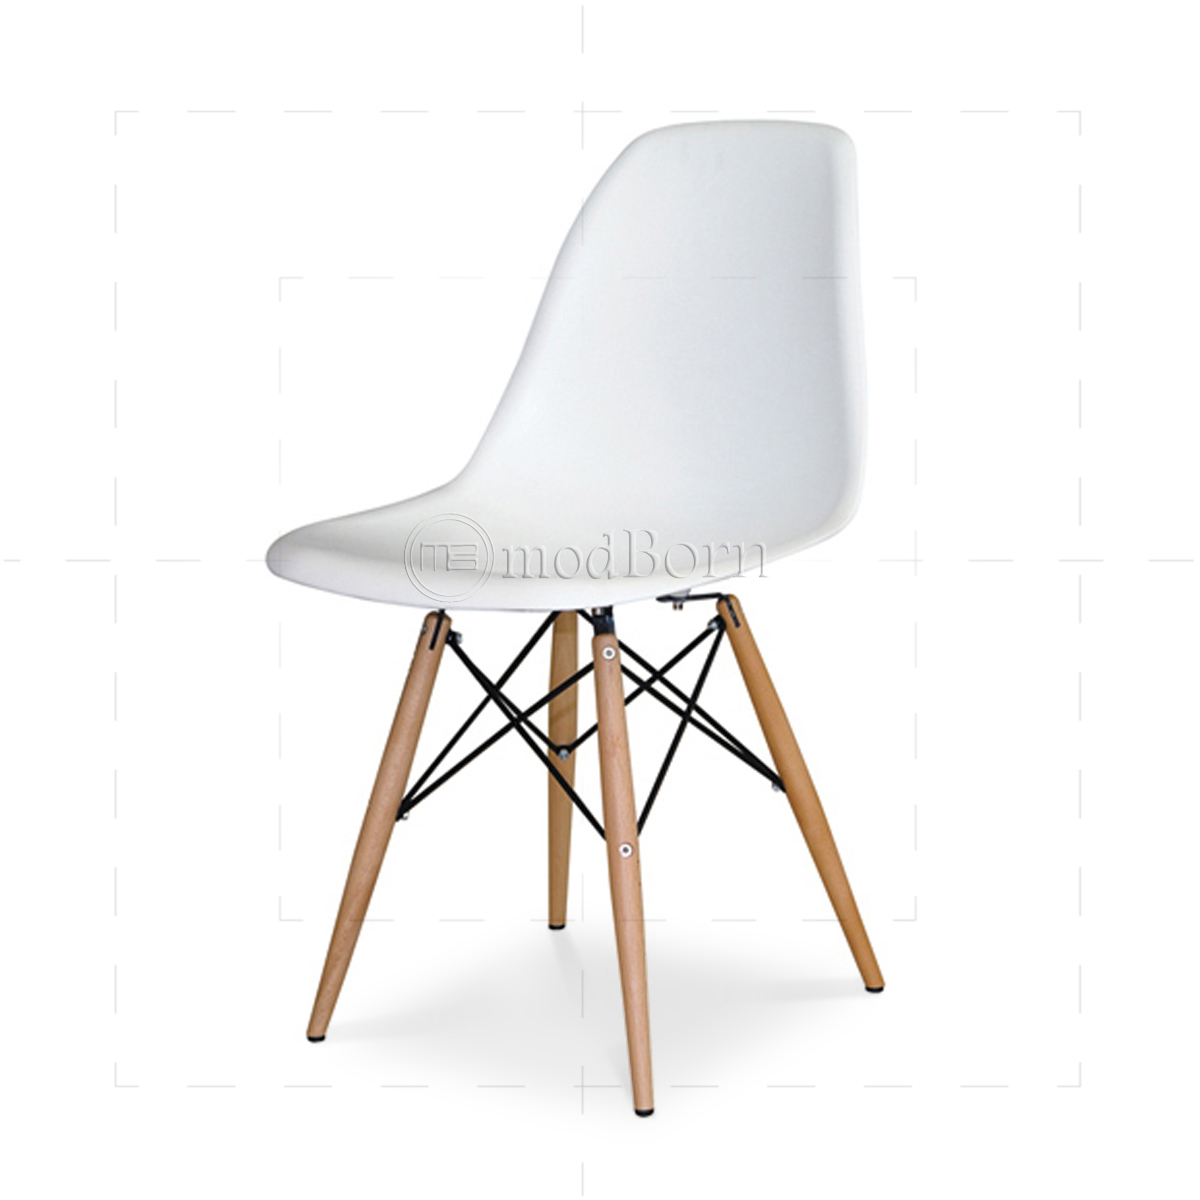 Eames Style Dining DSW Chair White Replica : Earnes CEDC DSW White 1200x1200 from www.modborn.com size 1200 x 1200 jpeg 262kB